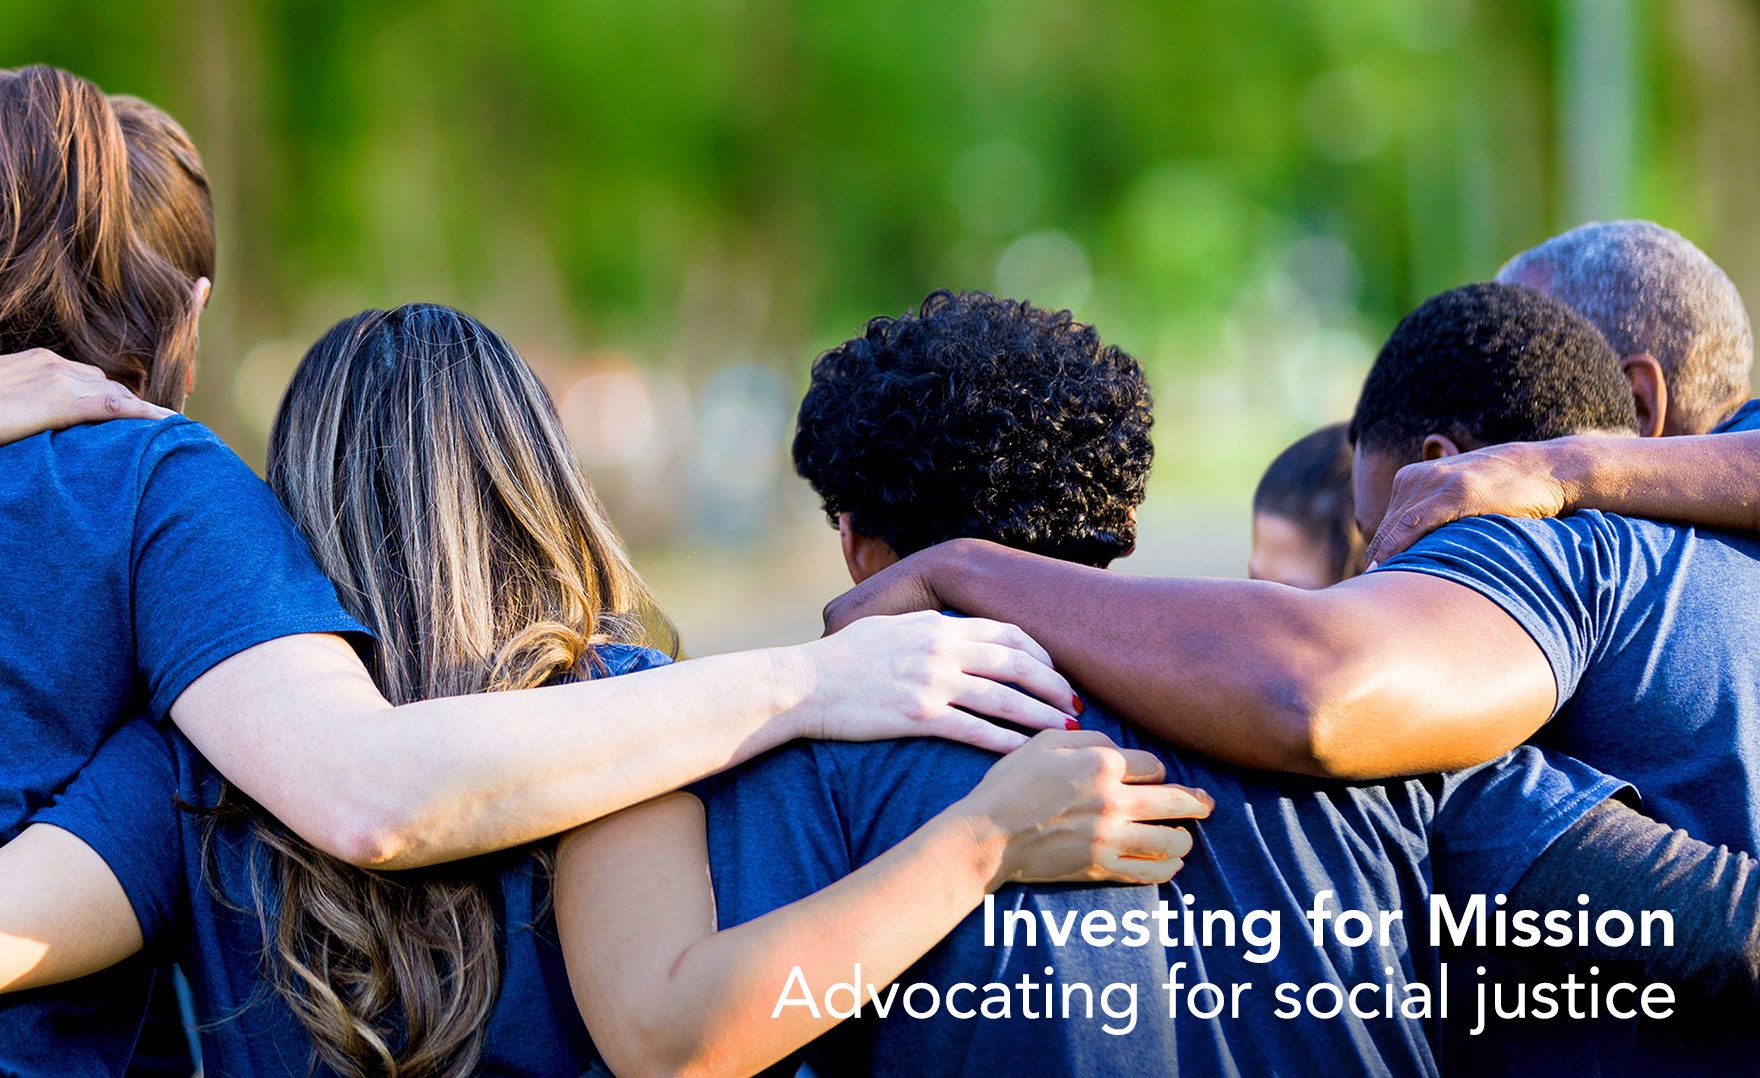 Investing for Mission | Advocating for social justice